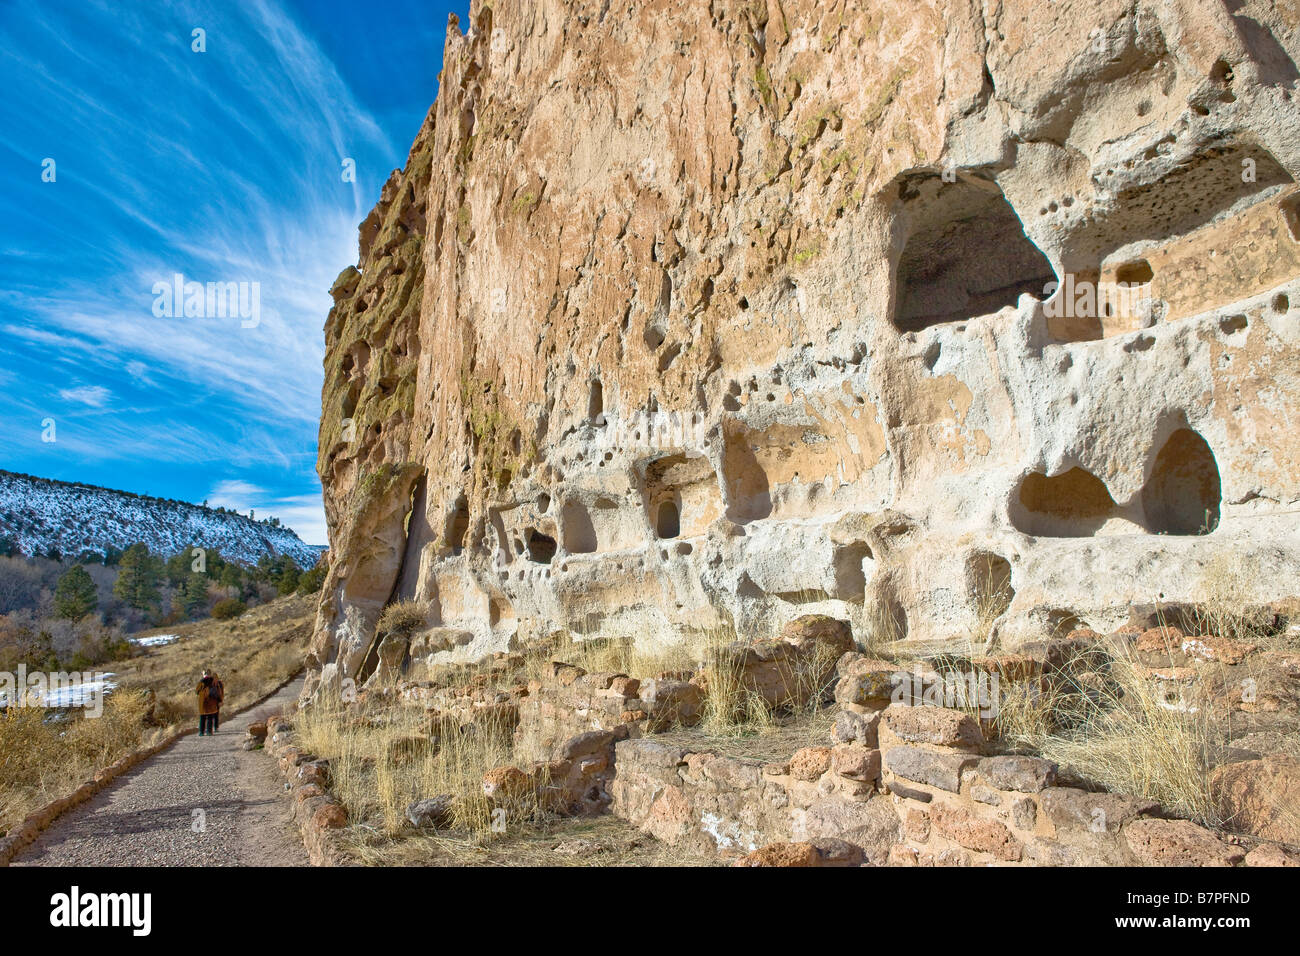 Ancient pueblo dwellings in New Mexico, USA. Native Americans used natural caves as housing. - Stock Image